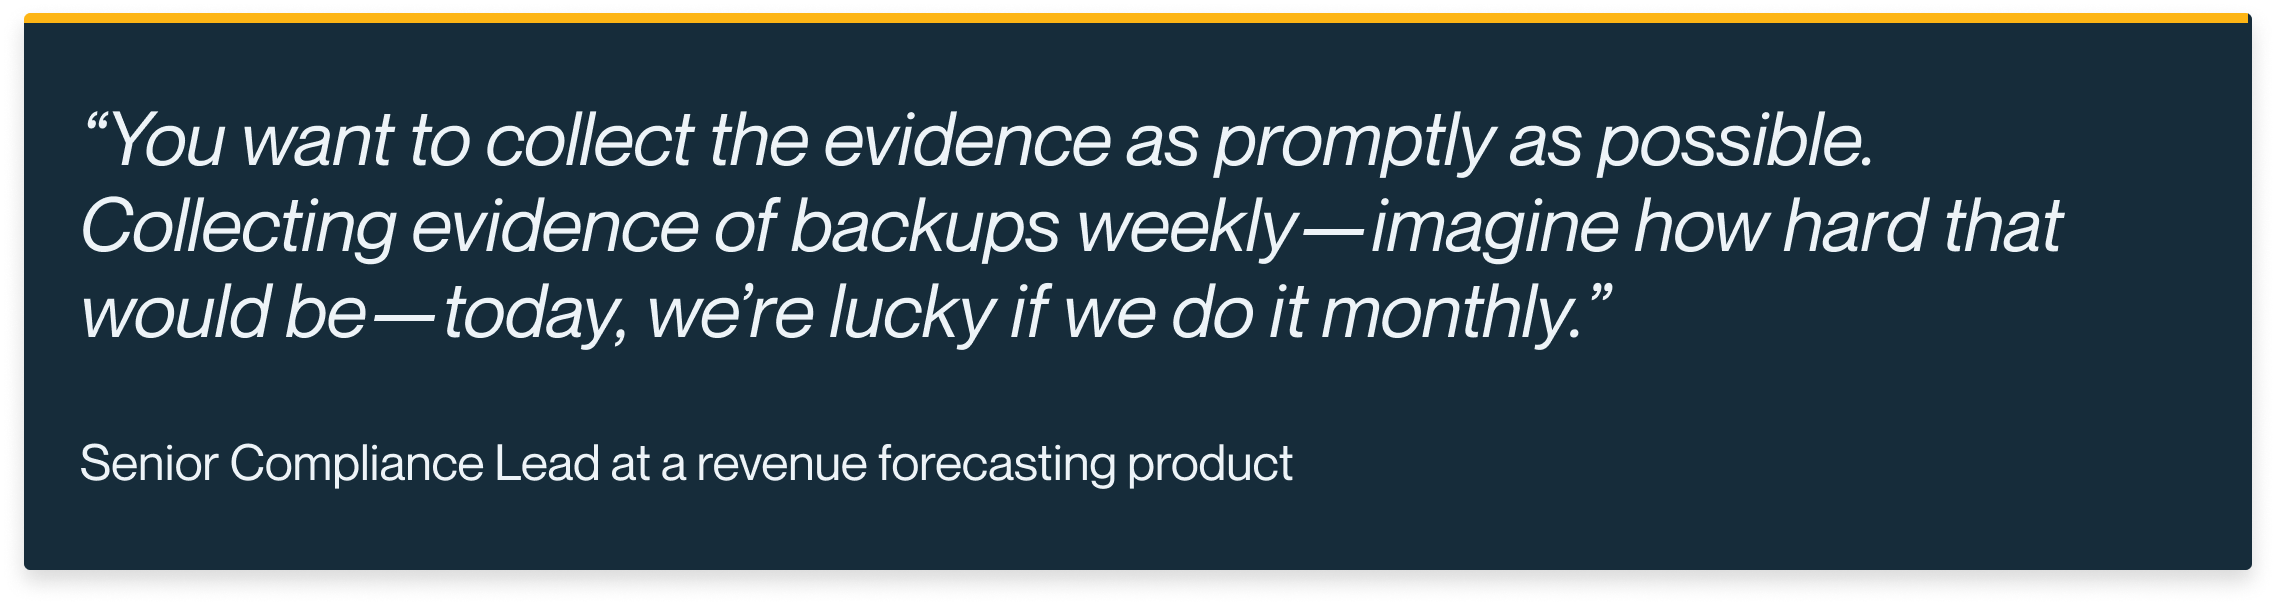 Automated Evidence Collection Customer Quote